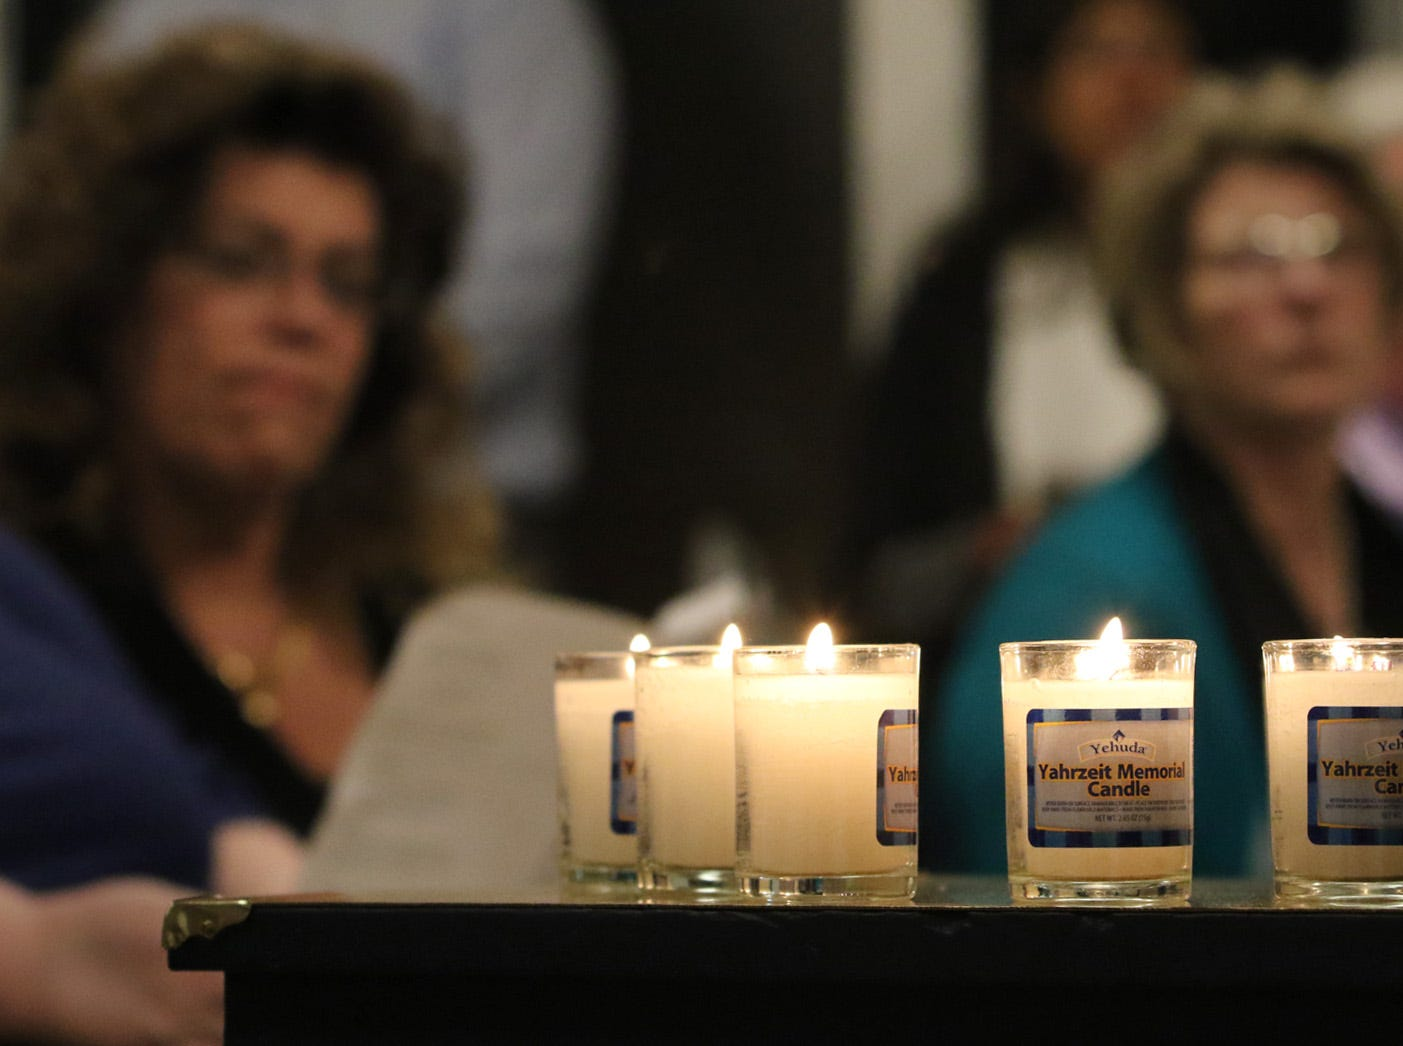 The Beth Hatikvah (House of Hope) Synagogue in Bremerton held a memorial service for the Tree of Life Synagogue shootings Tuesday night in Bremerton. A candle was lit for each person who died during the shooting at the Tree of Life Synagogue.